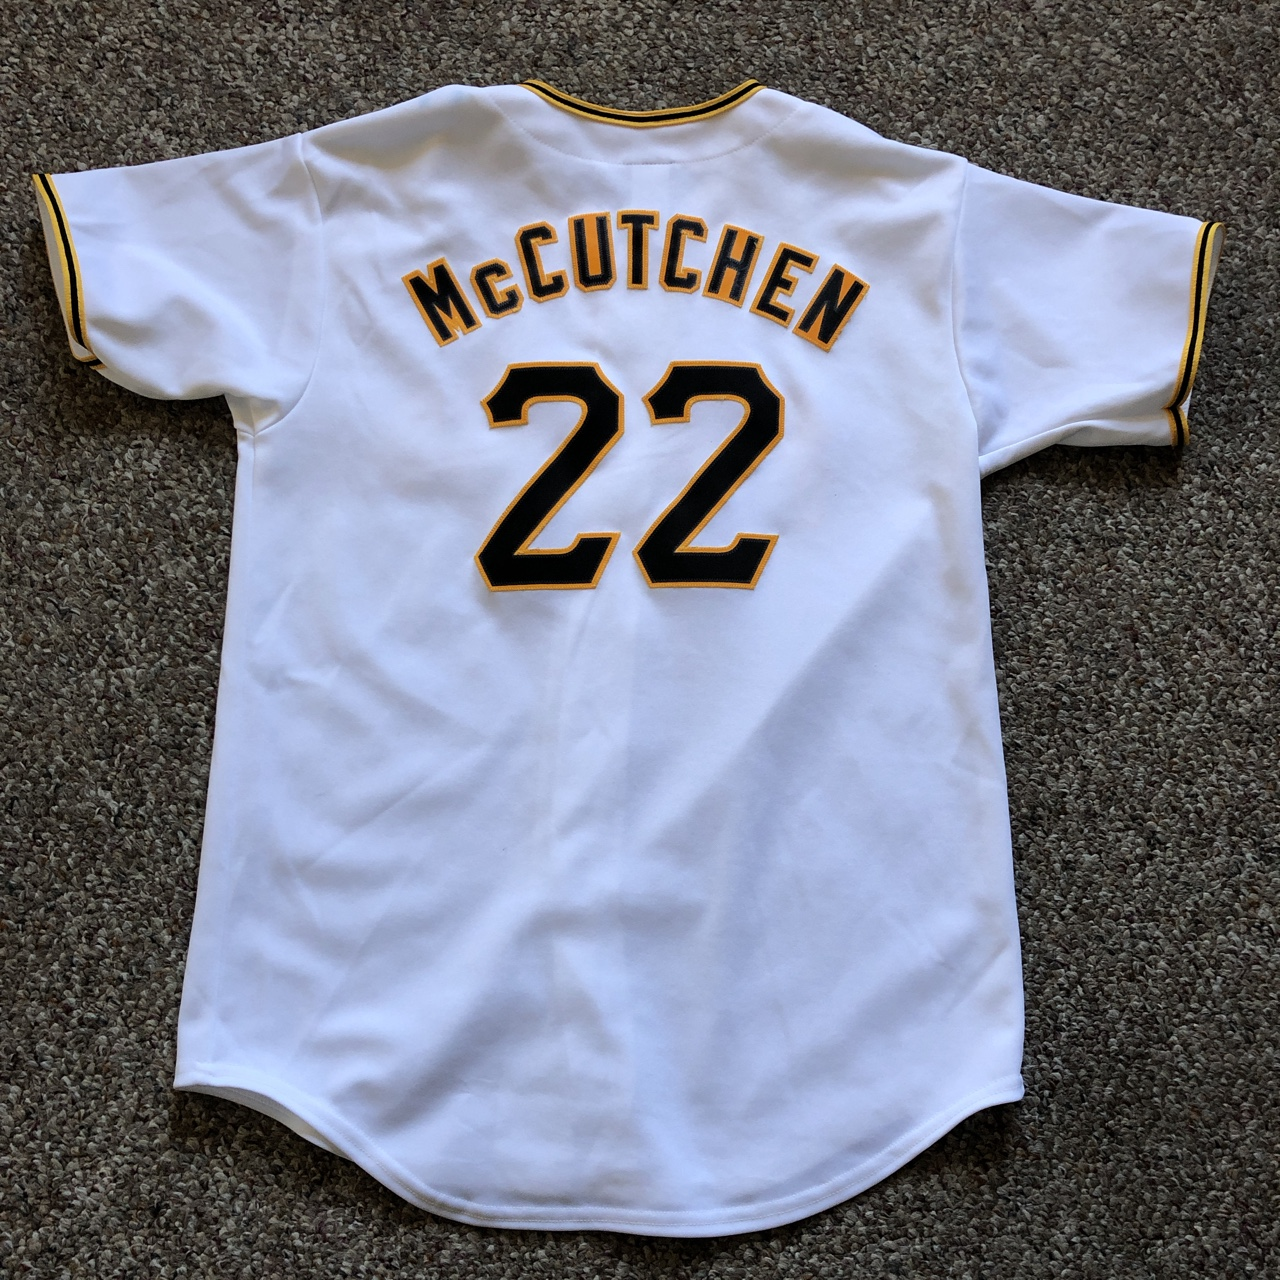 timeless design 4e969 34185 Andrew McCutchen Pittsburgh Pirates Jersey. Worn and ...